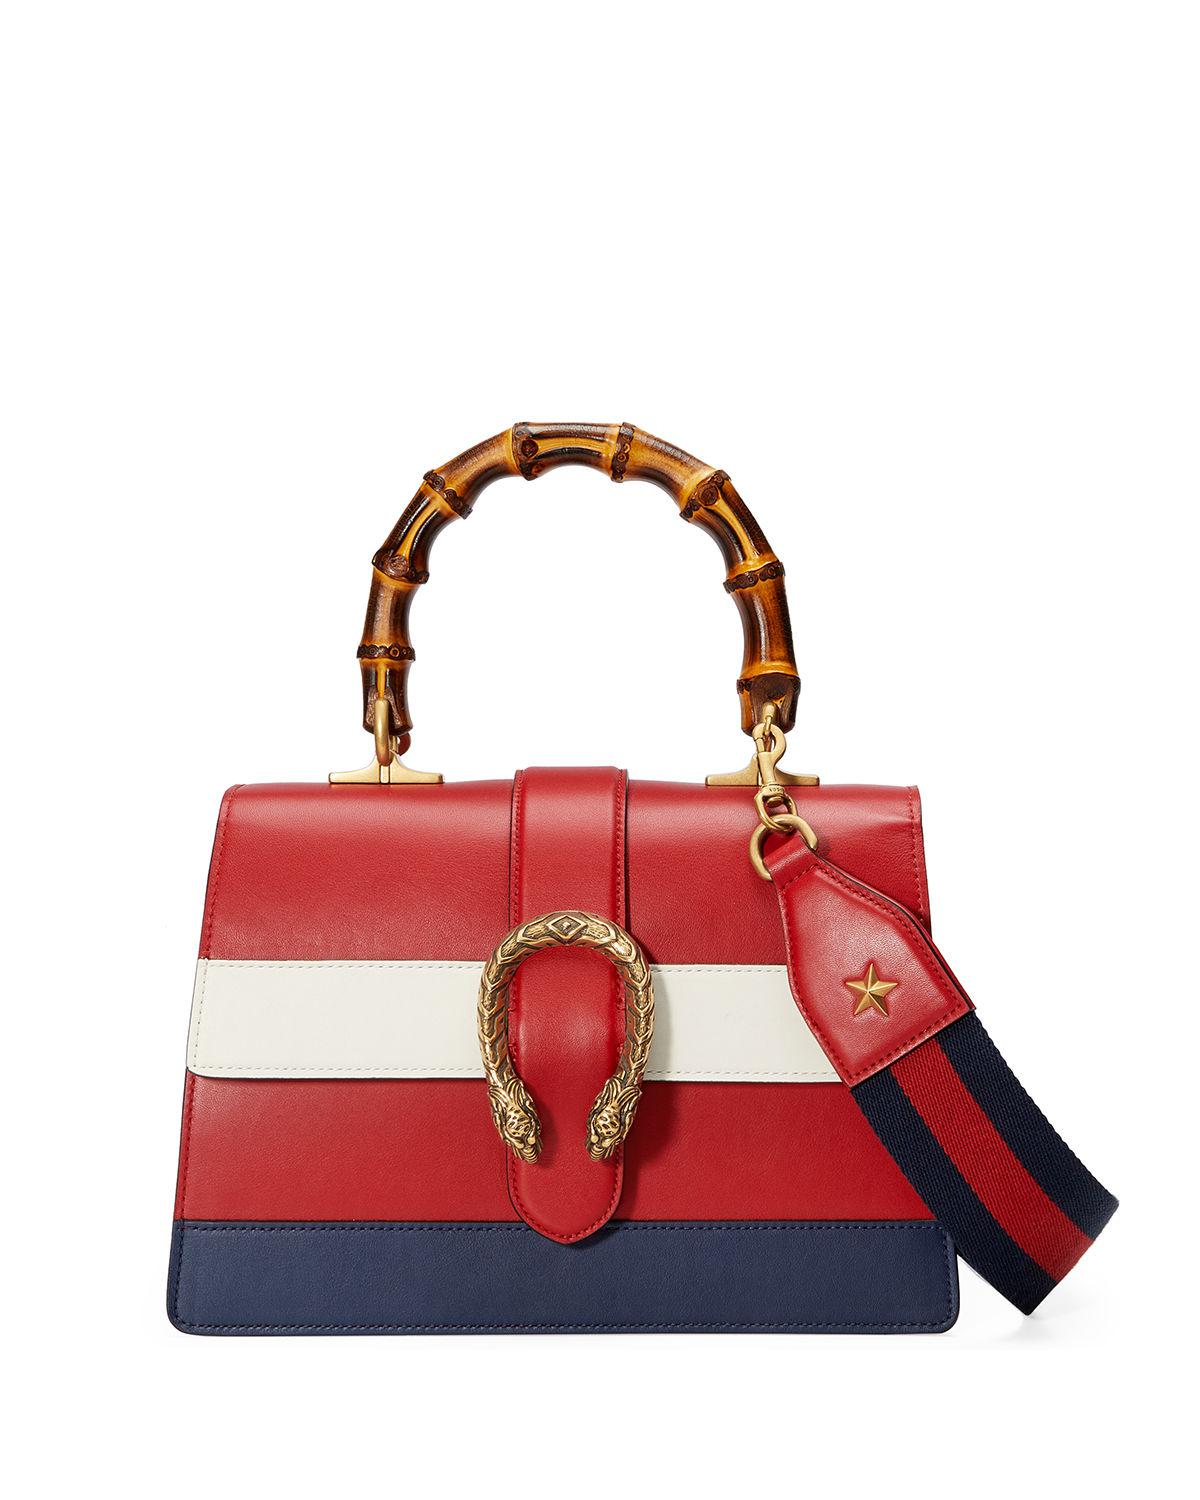 de7c779d9 Gallery. Previously sold at: Bergdorf Goodman · Women's Gucci Bamboo Bags  Women's Gucci Dionysus Bags